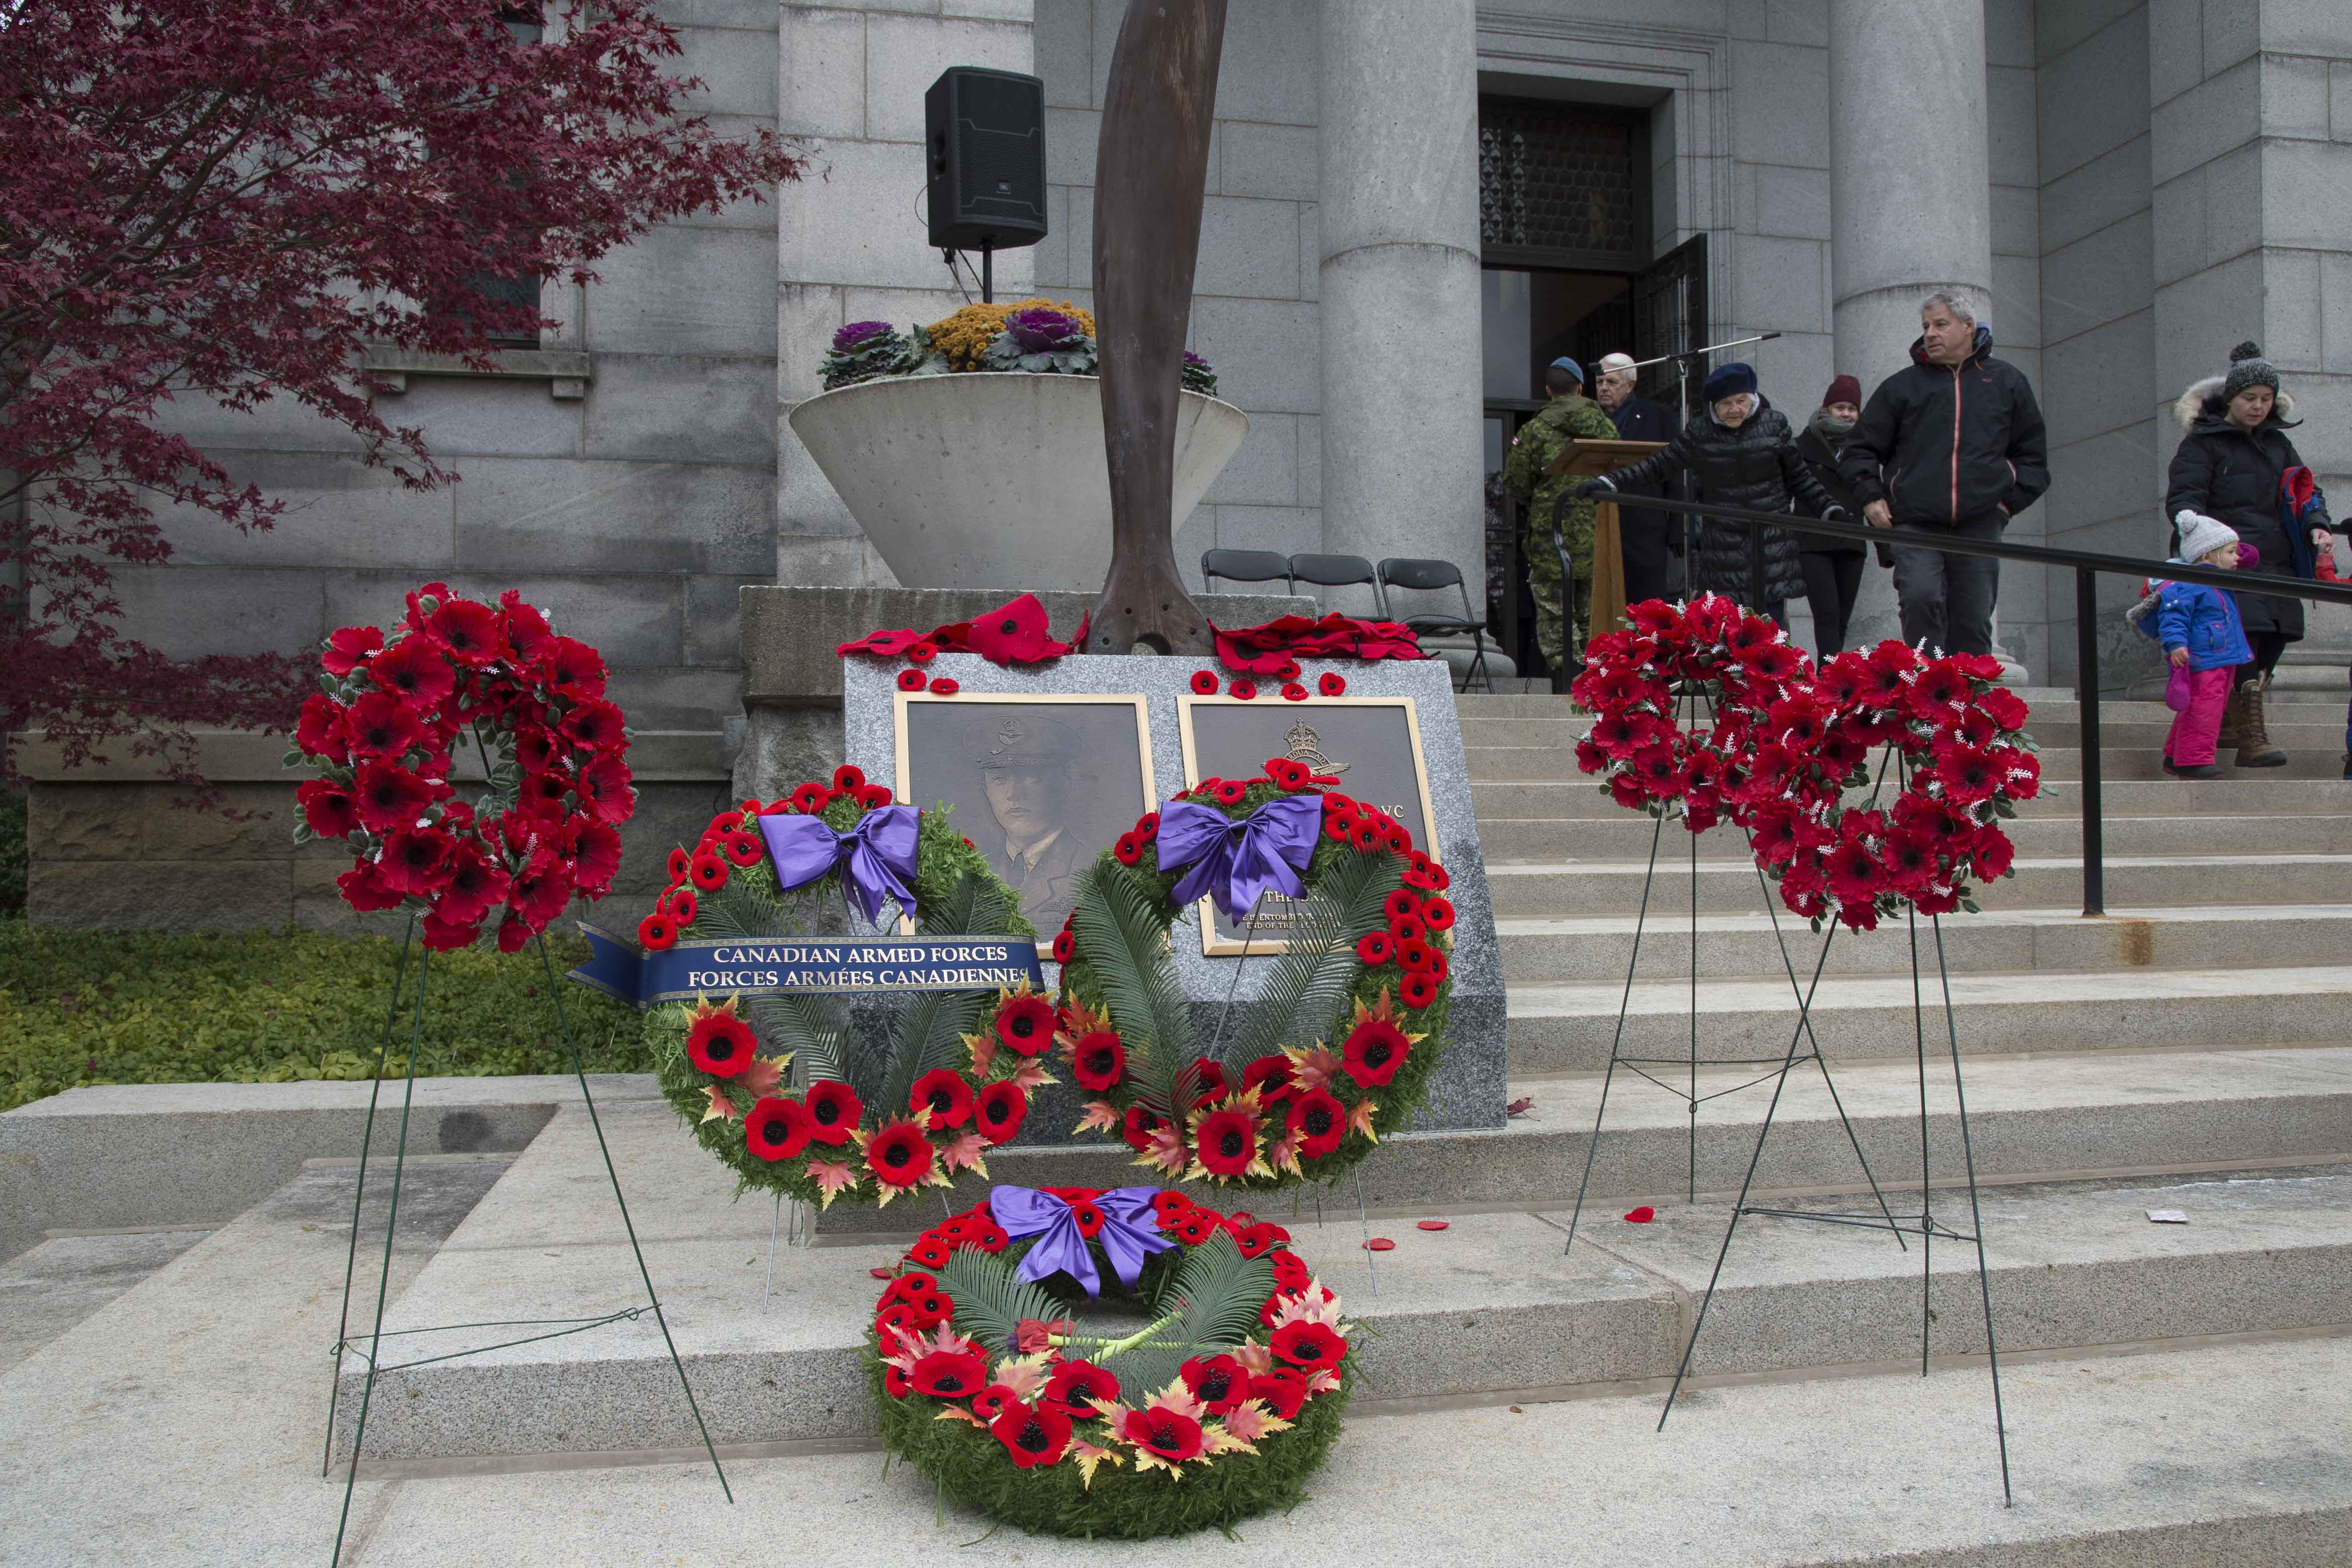 Wreaths of poppies lie on gray steps in front of a memorial.